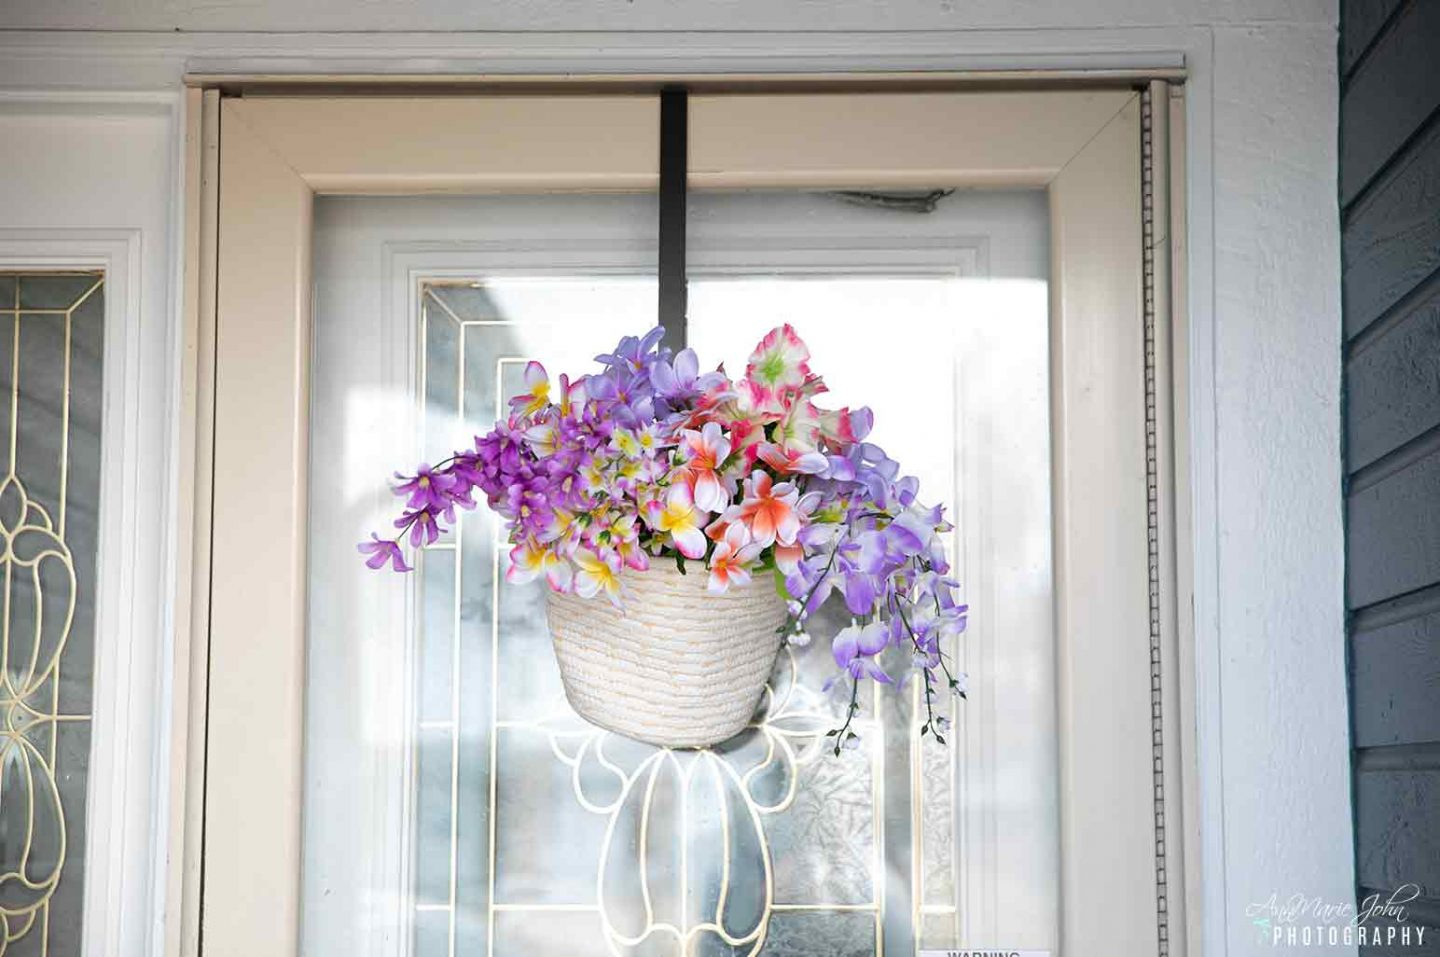 DIY Hanging Basket With Flowers